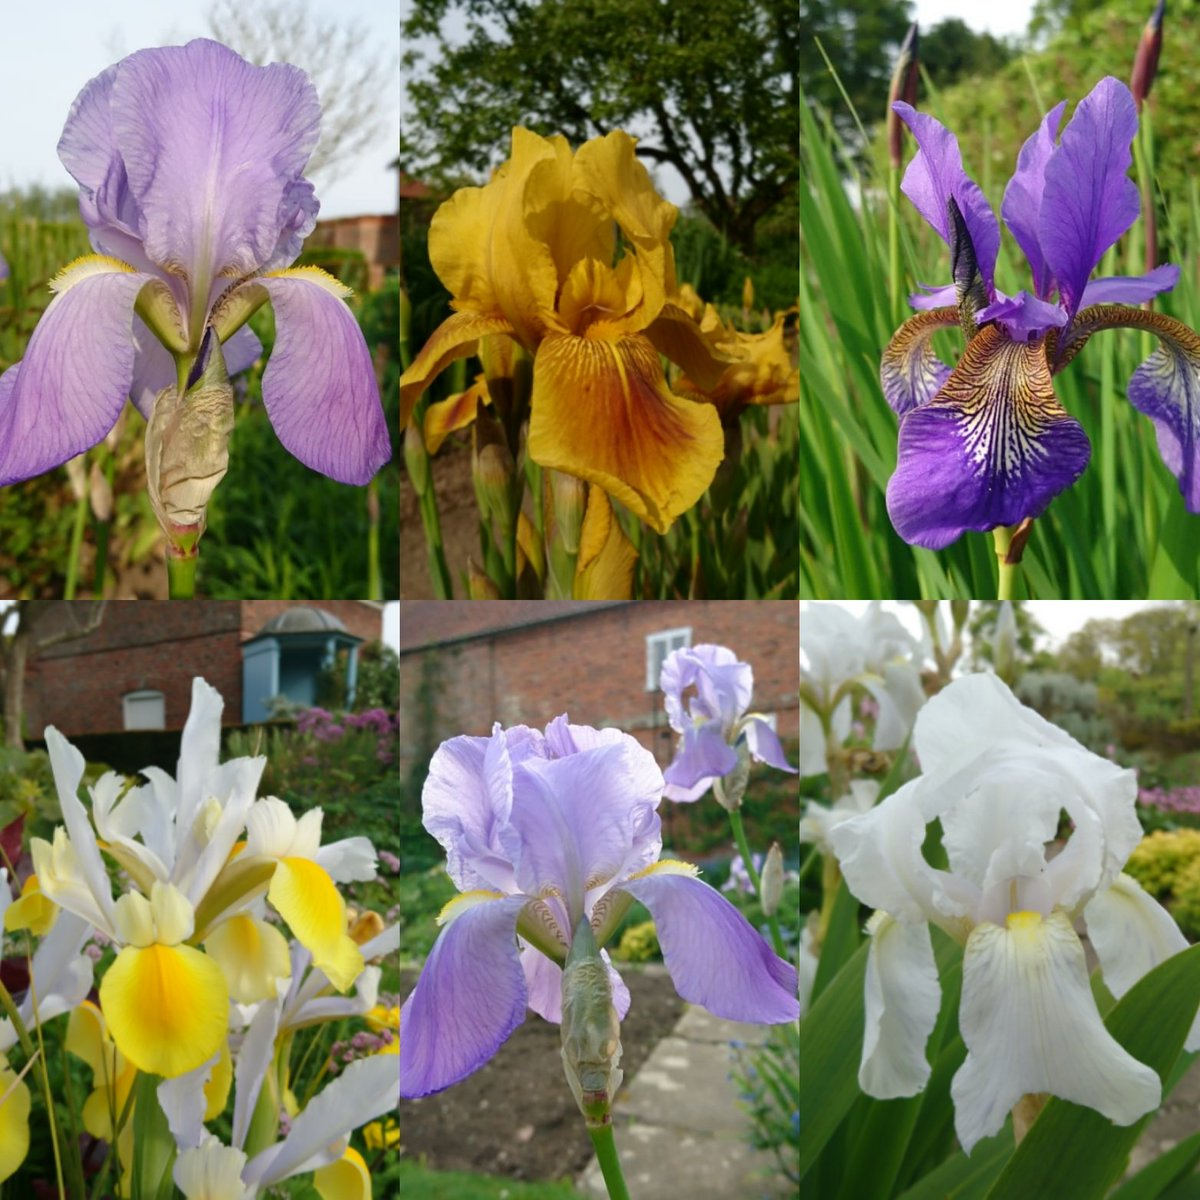 It's all about #irises in the Gunby gardens this week.  Enjoy the fragile beauty of their paper-thin, delicate petals in lots of subtle and vibrant colours.  Photos taken today in late afternoon ☀ #gunbyhall #lincolnshire #nationaltrust